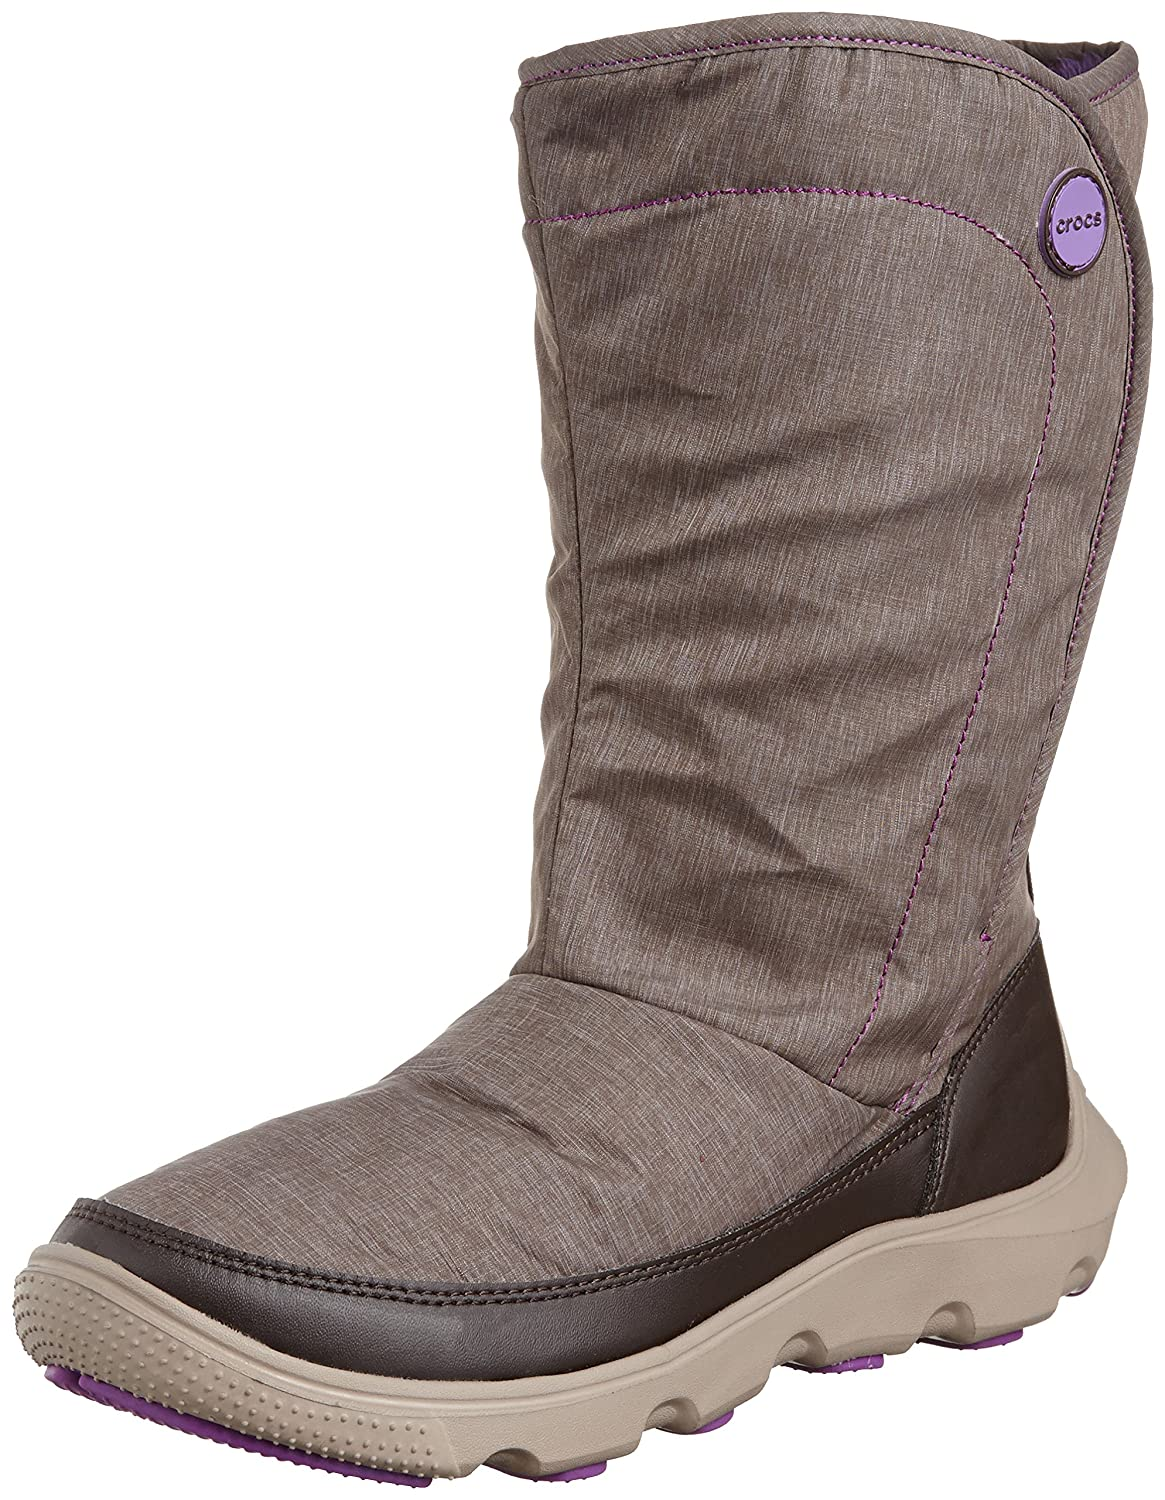 Crocs Women's Duet Busy Day Boot W B00HWT4W92 10 B(M) US|Espresso/Mushroom